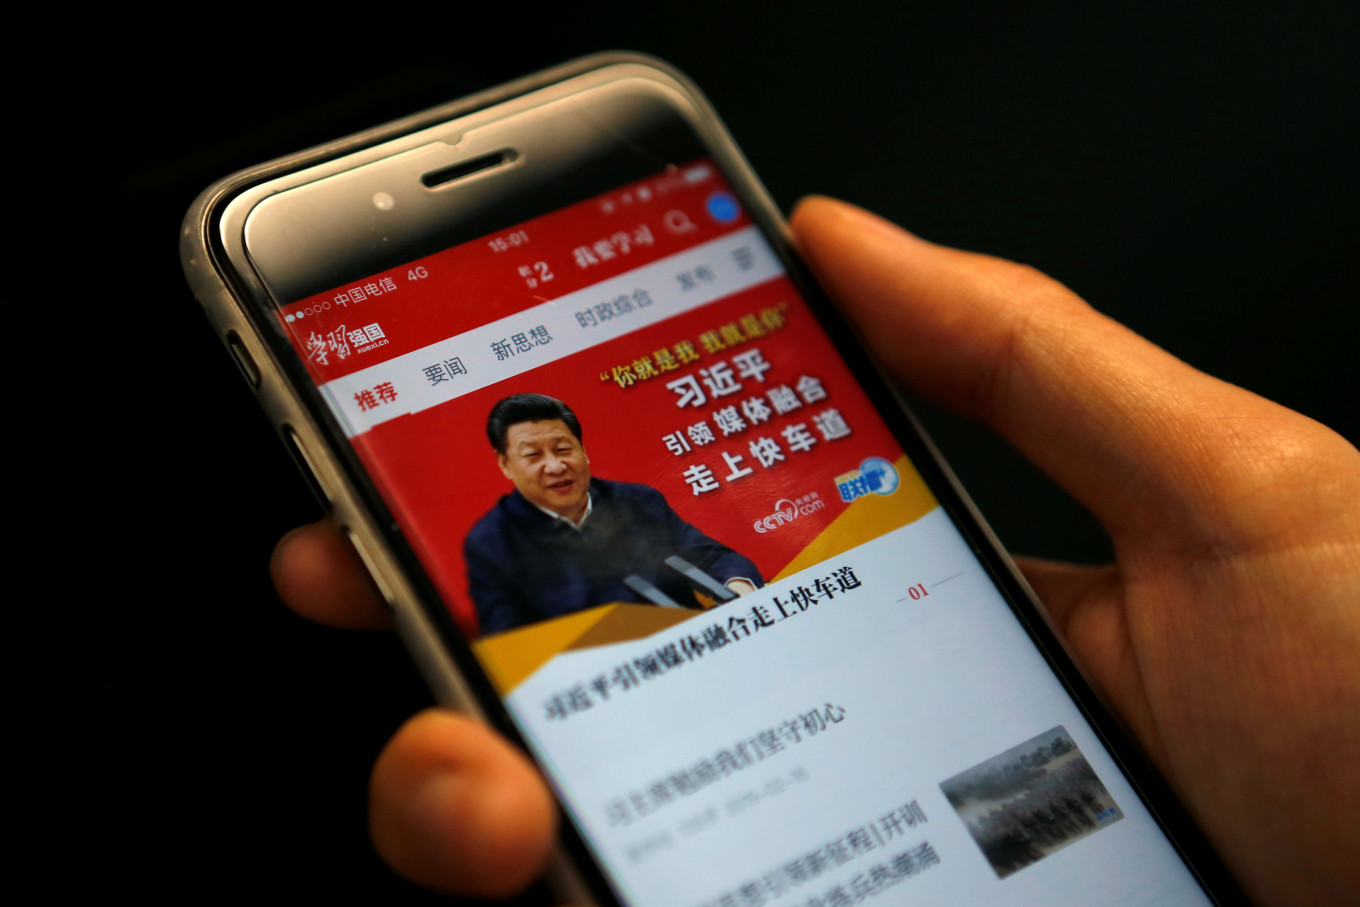 Alibaba Is The Force Behind Hit Chinese Communist Party App Sources World The Jakarta Post No commission bit.ly/36pnik0 alibaba is the best website when it. alibaba is the force behind hit chinese